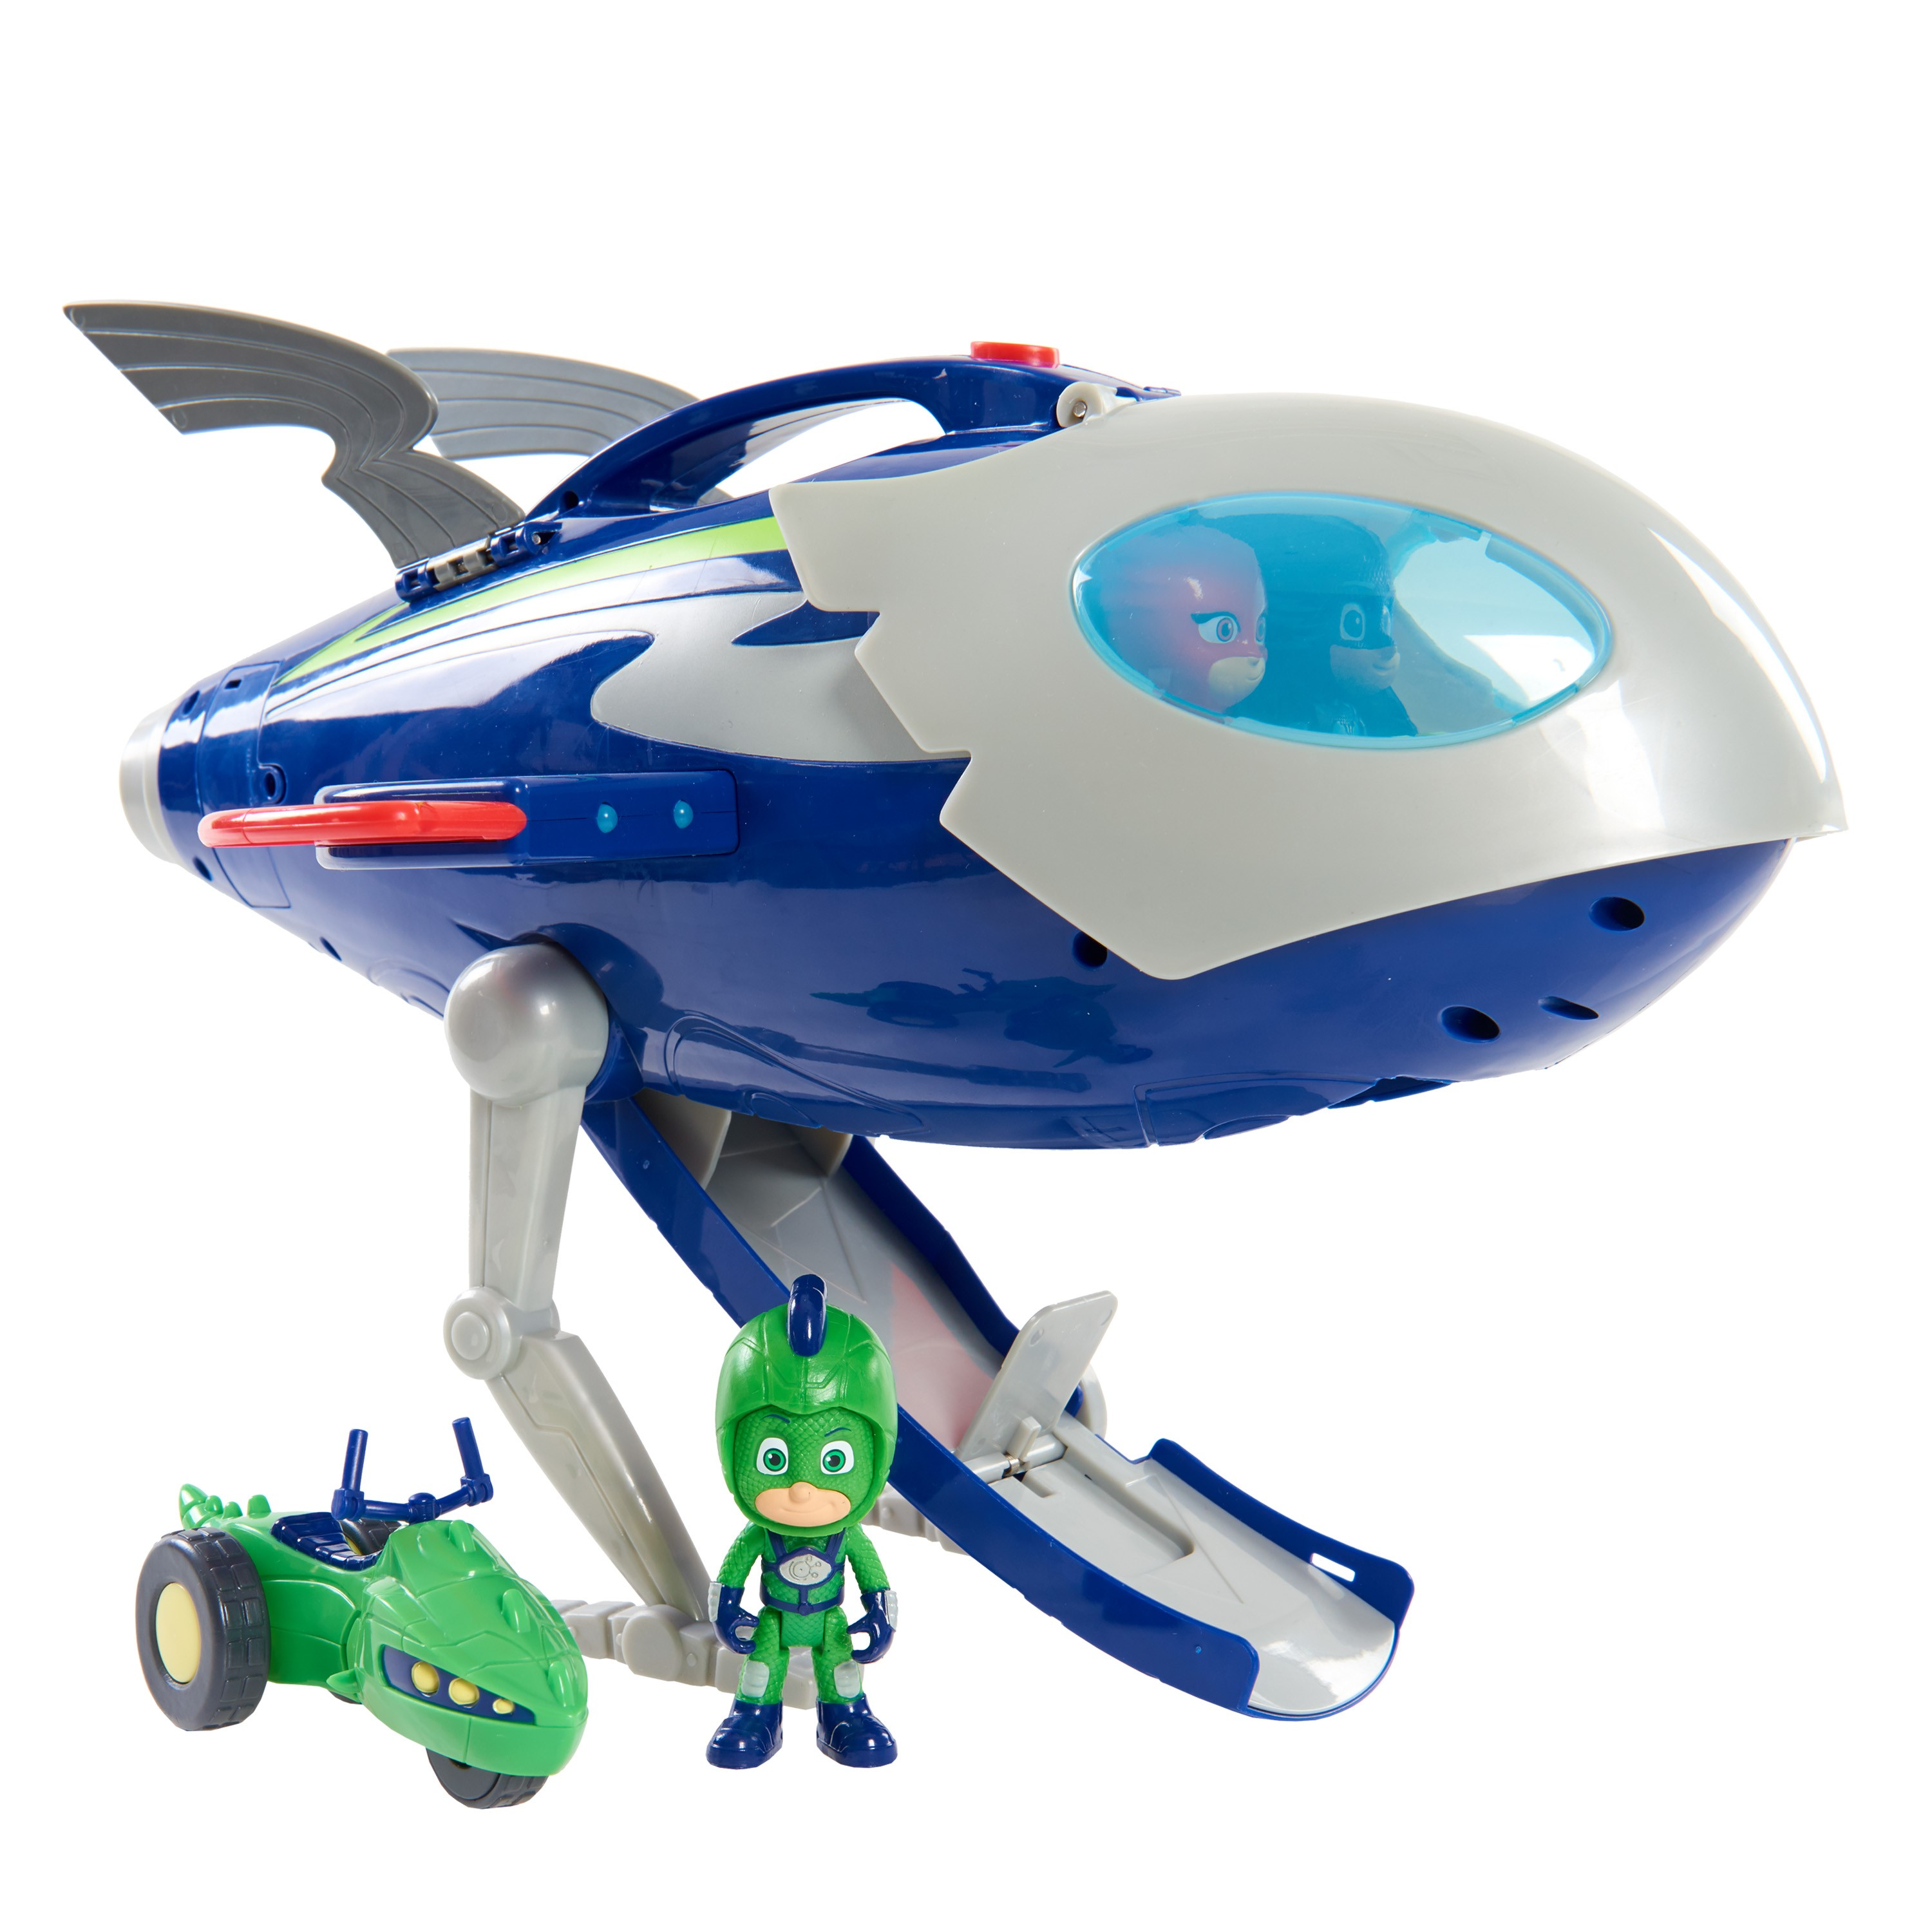 PJ Masks Super Moon adventure HQ Rocket Playset